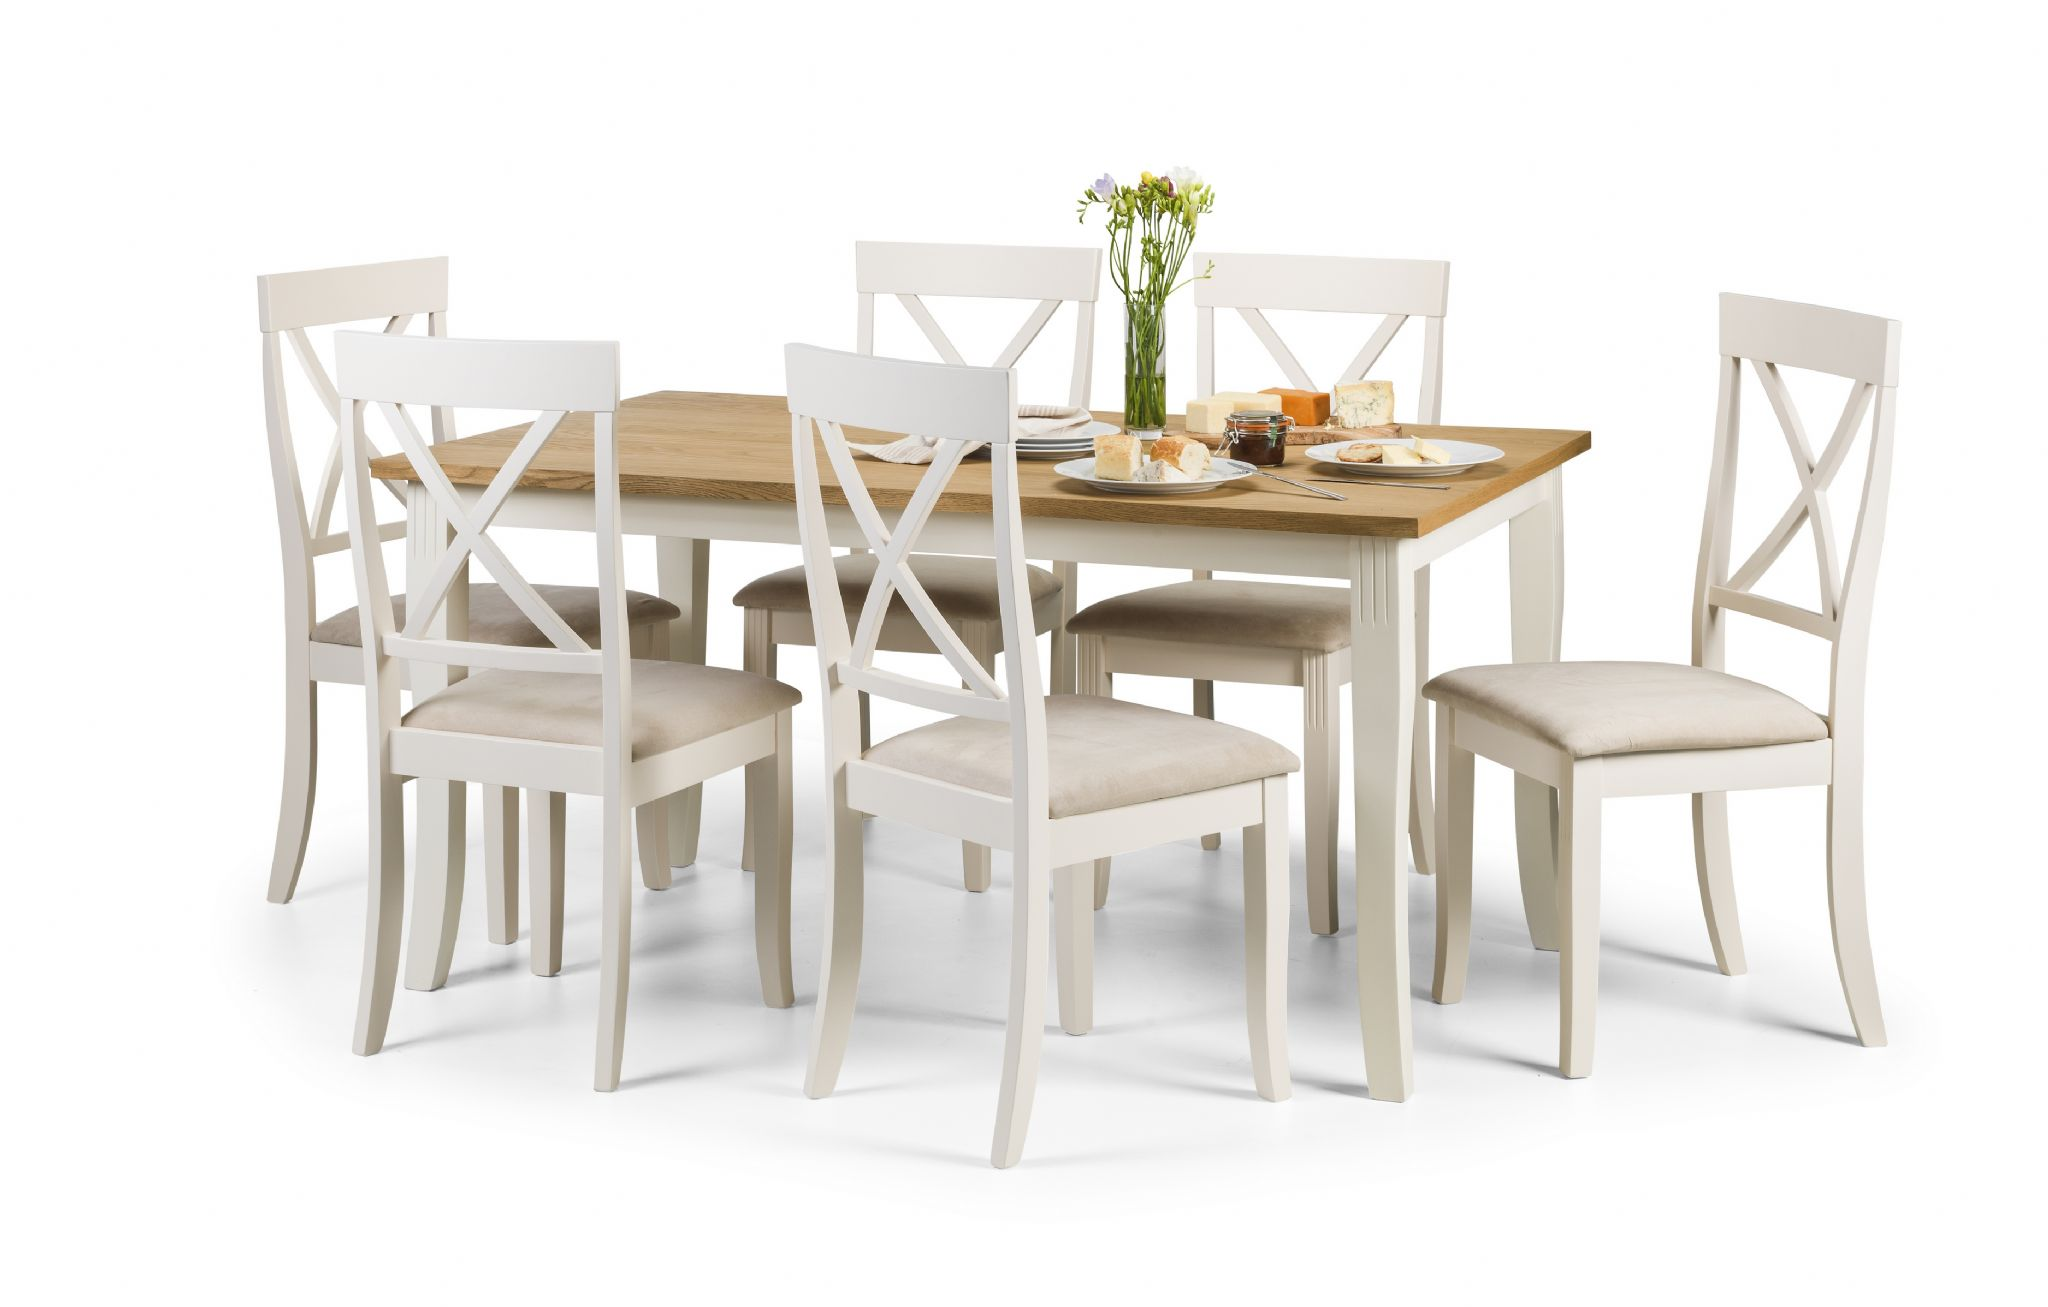 ivory dining chairs uk colorful outdoor guernica oiled oak and table jb186